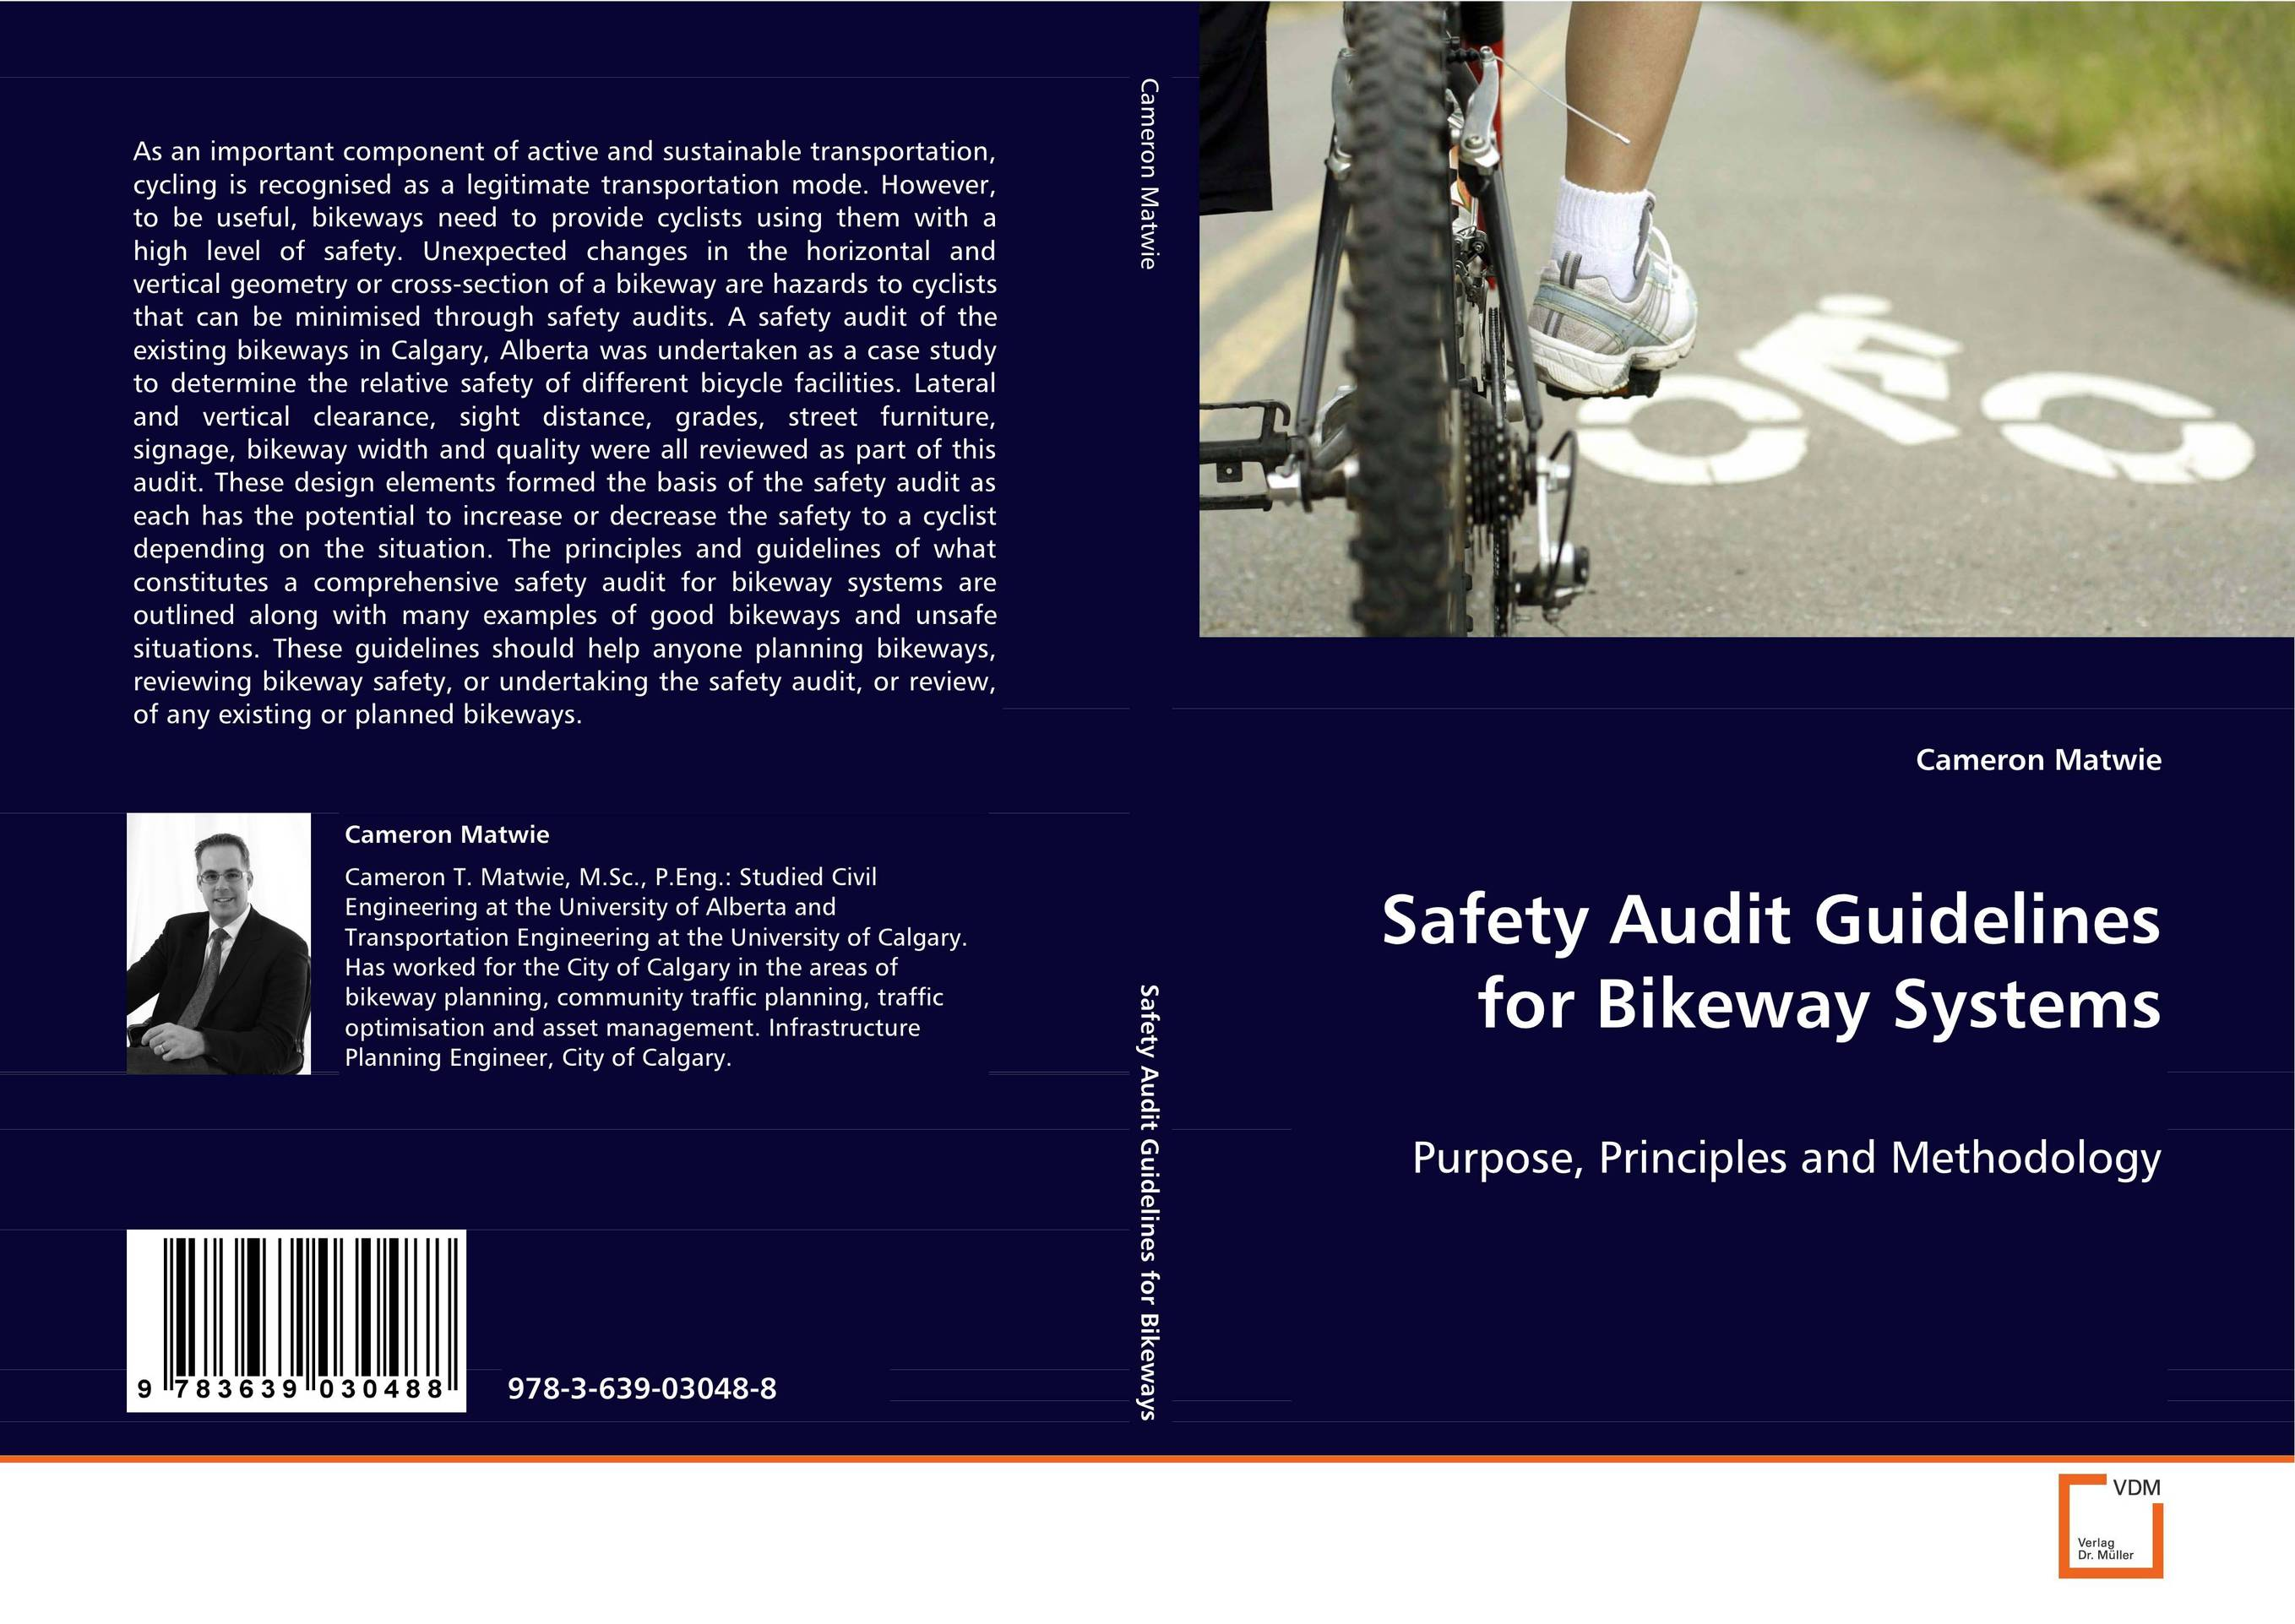 Safety Audit Guidelines for Bikeway Systems